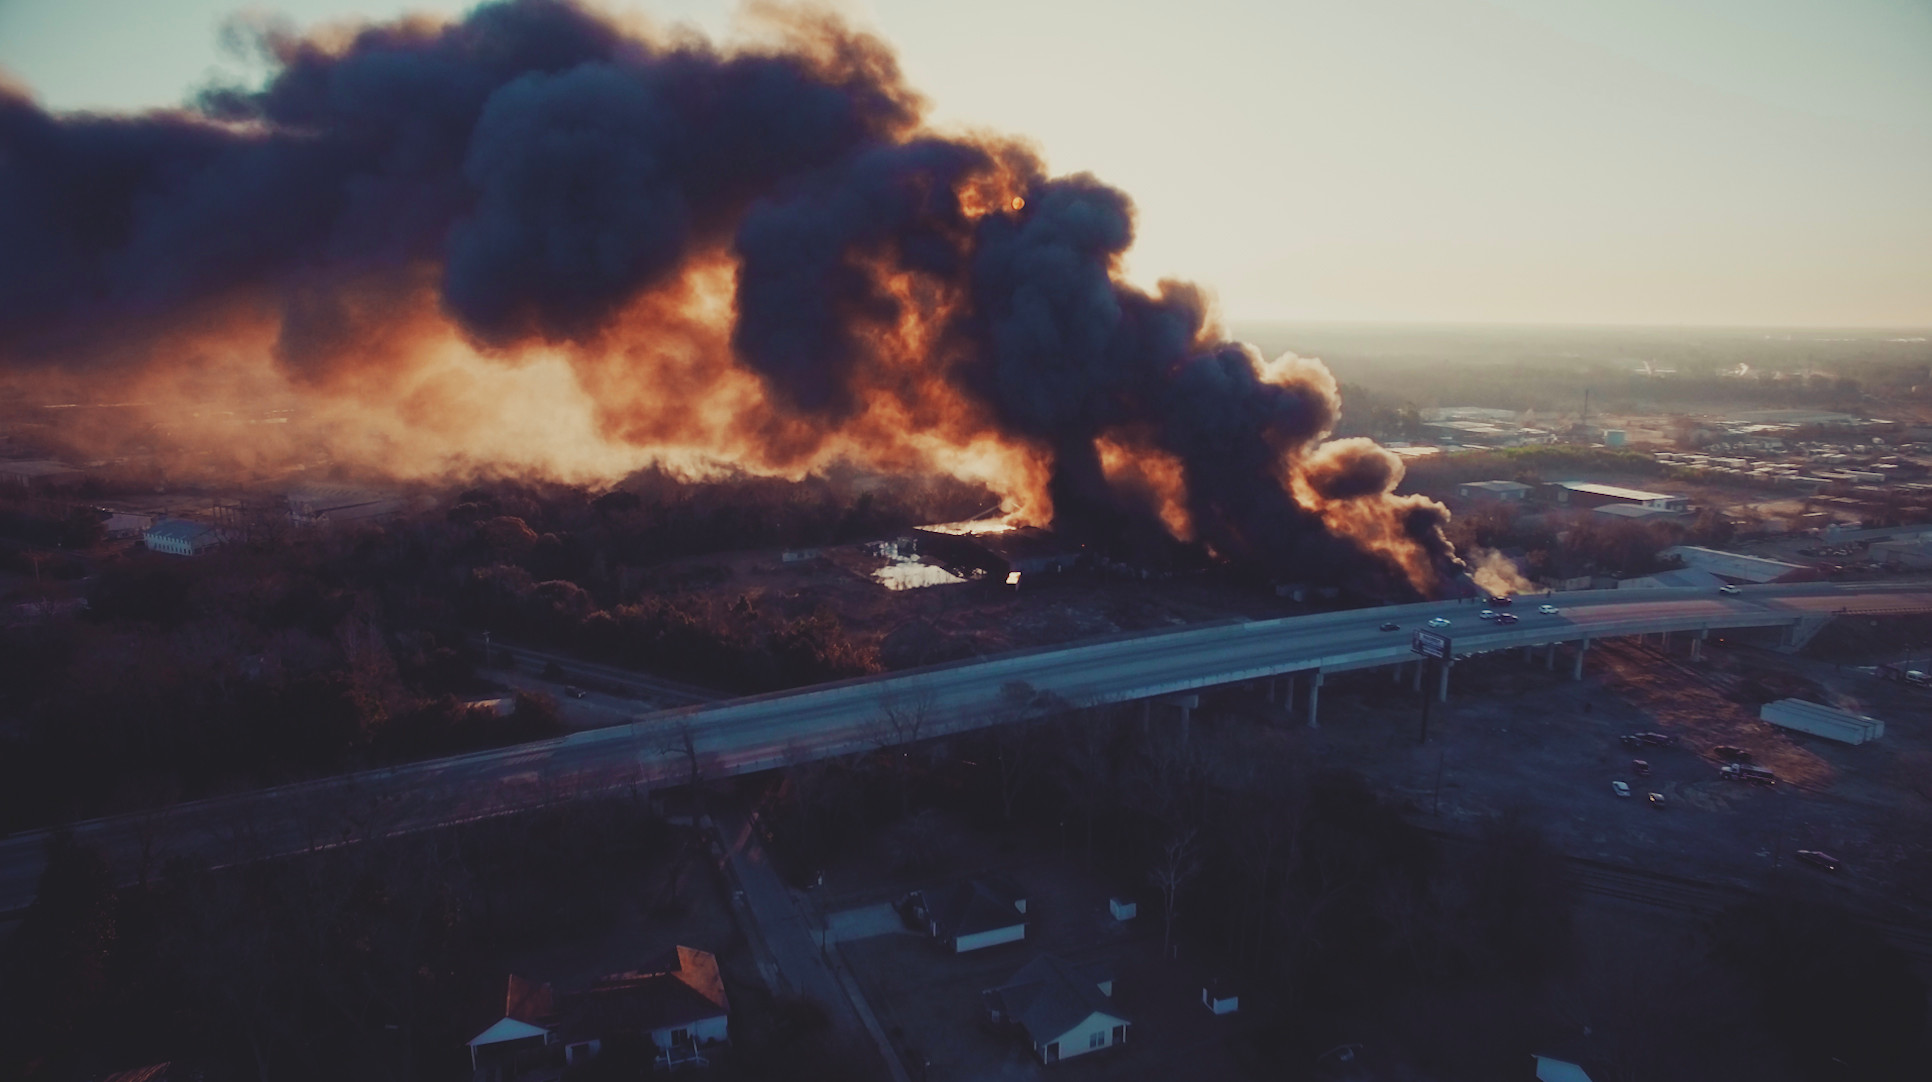 A drone image captures the smoke plume caused by a 400,000-square-foot warehouse fire Friday morning.